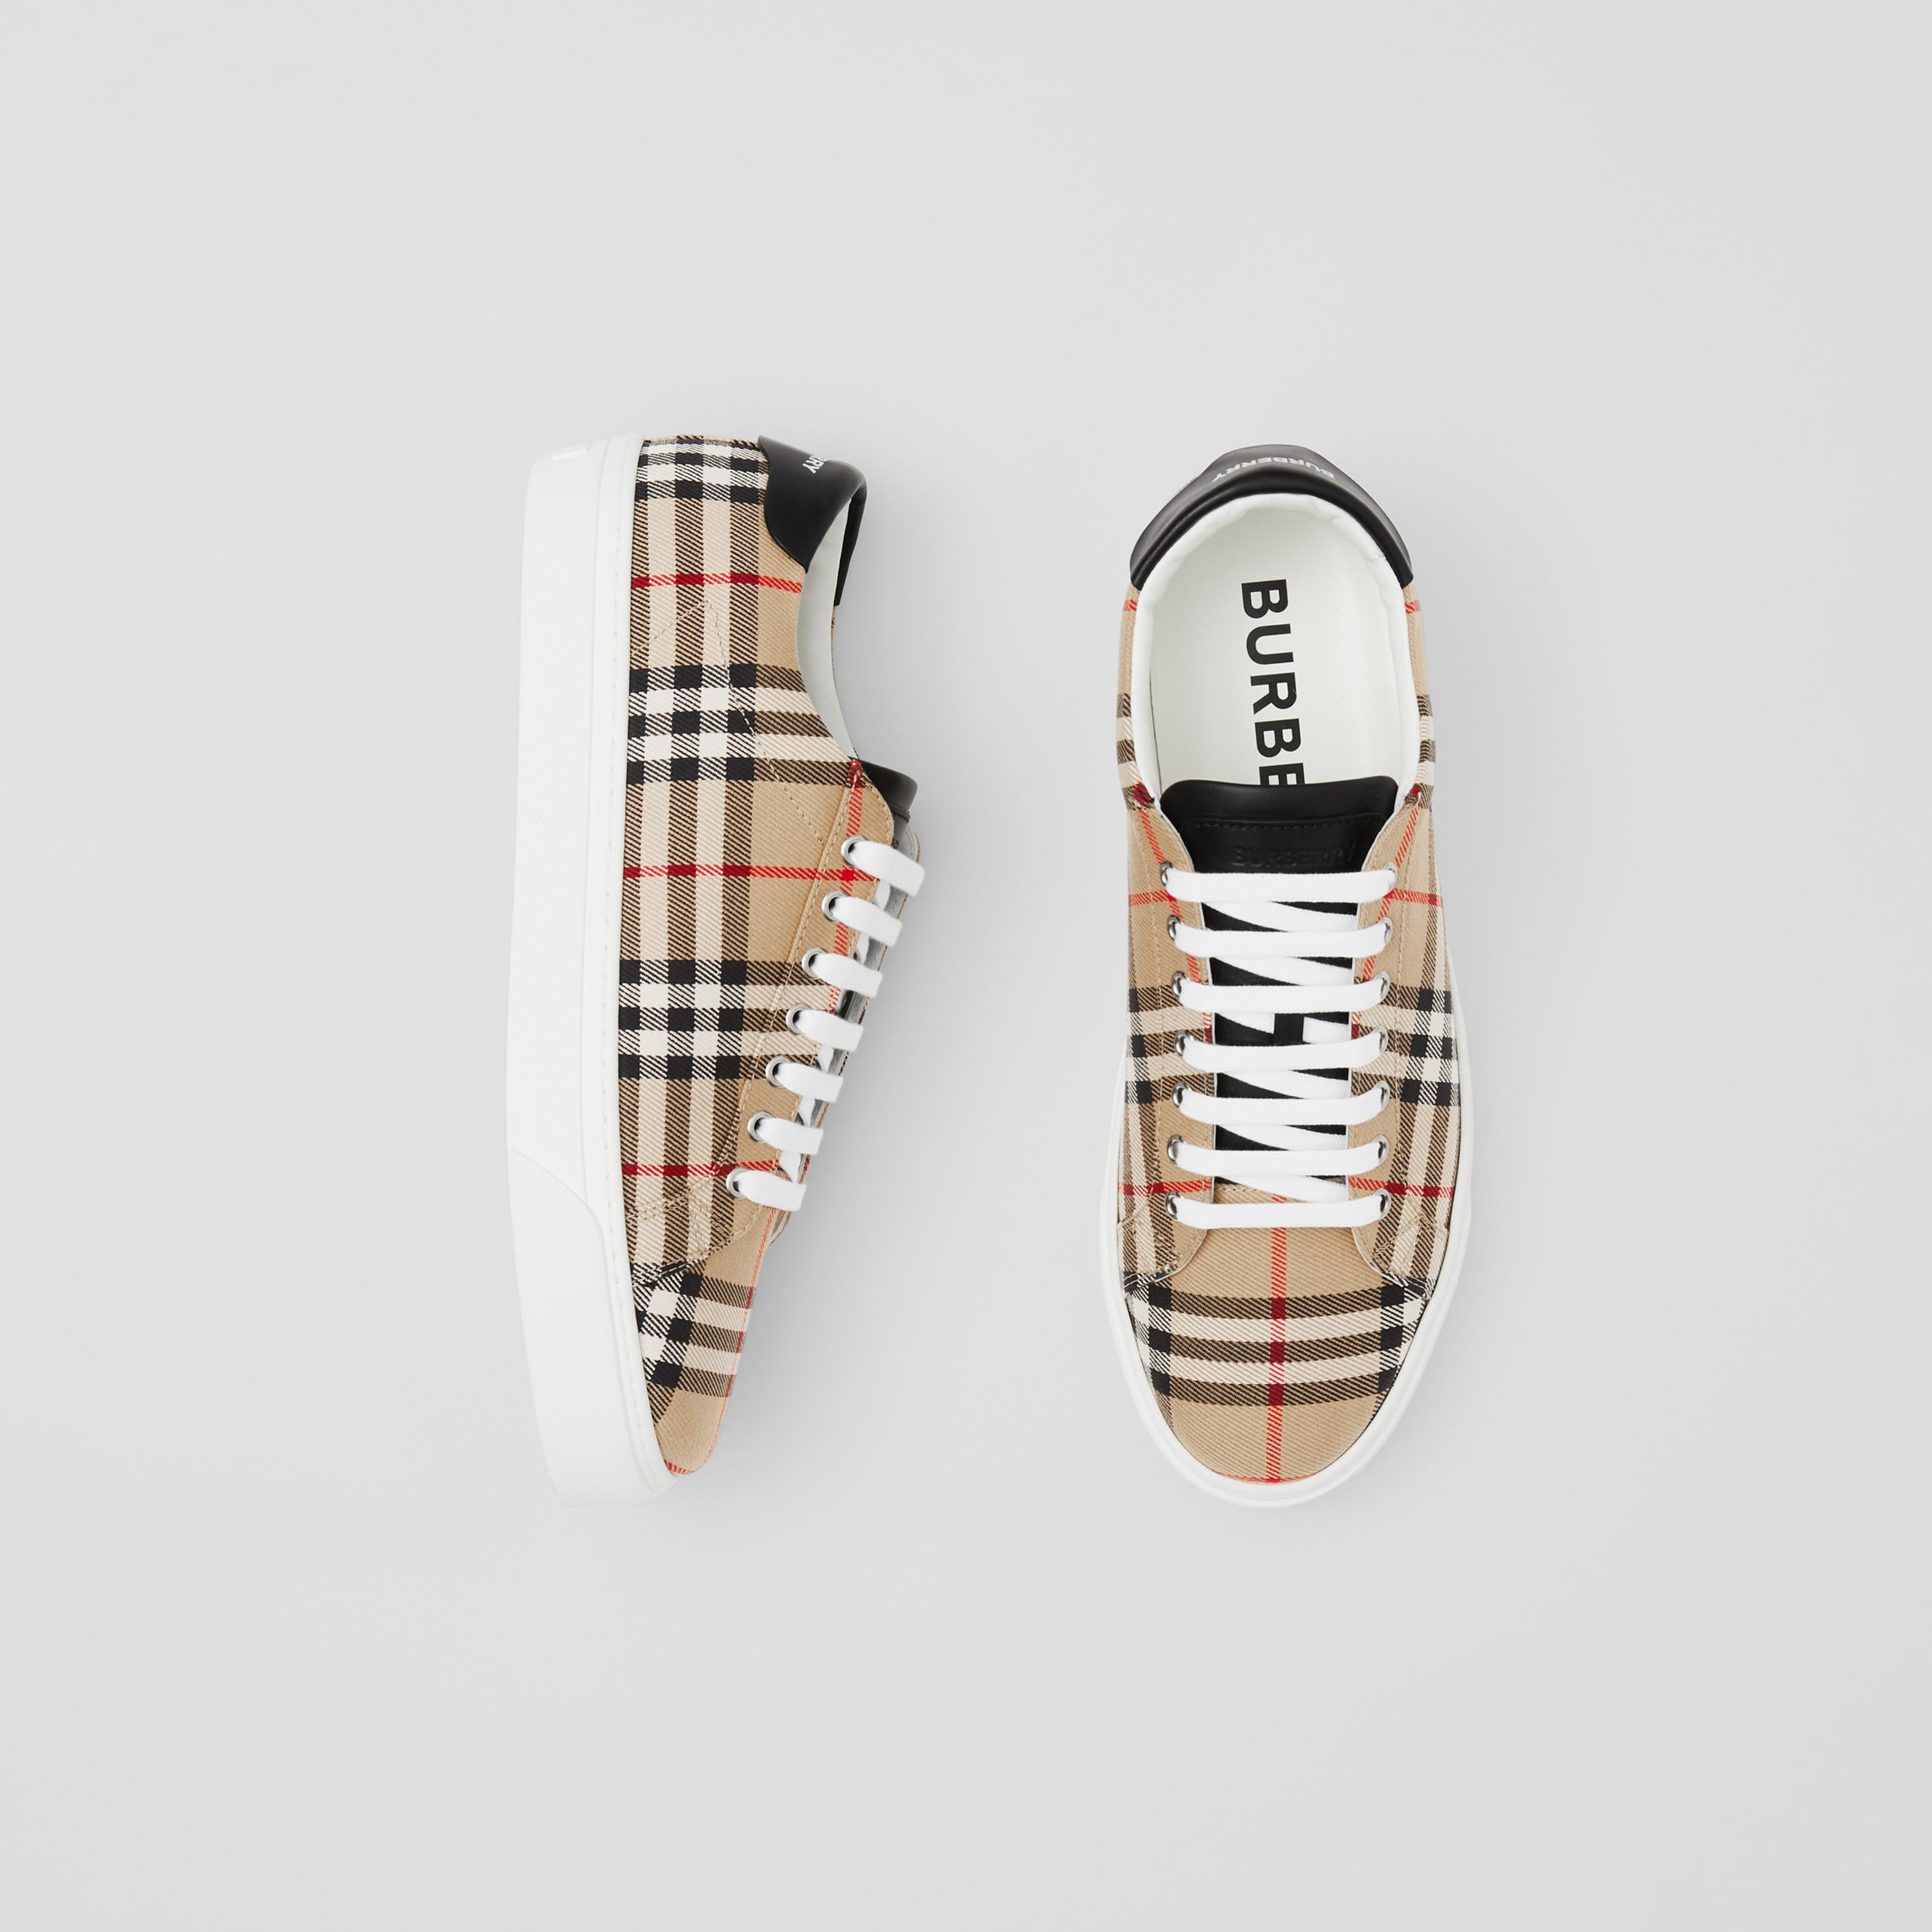 Bio-based Sole Vintage Check and Leather Sneakers in Archive Beige - Men | Burberry - 1